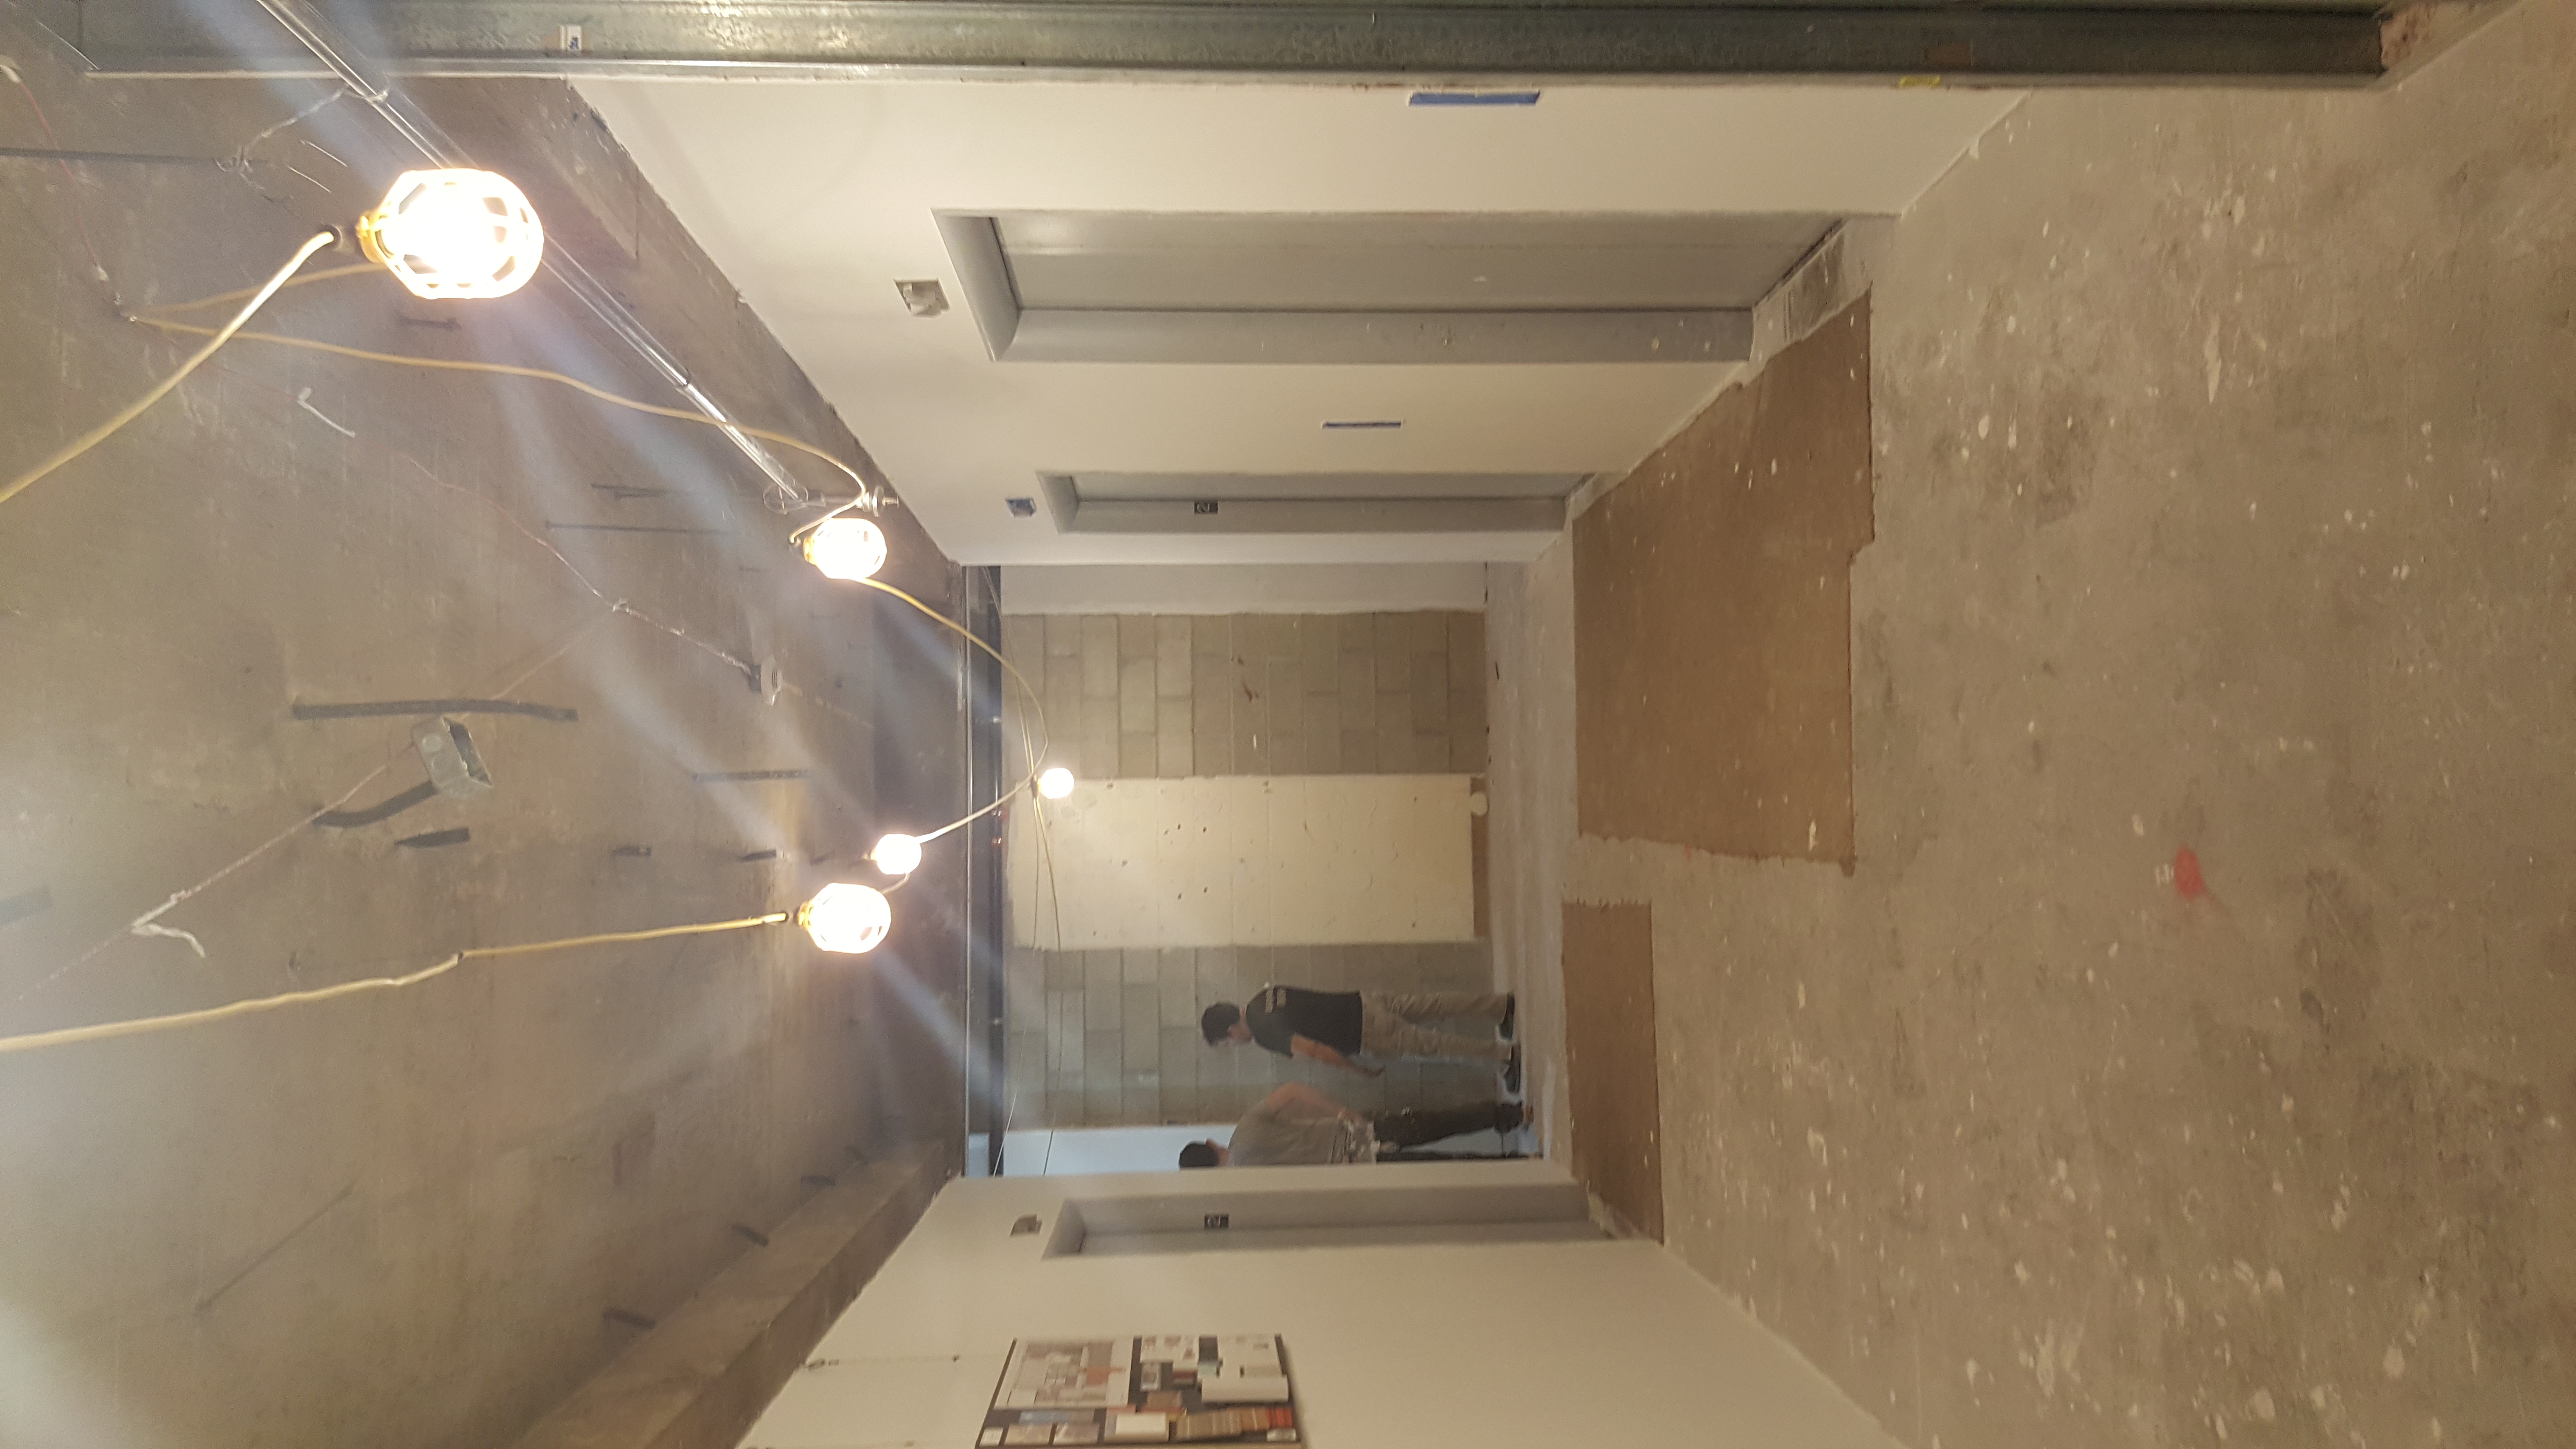 Entry Lobby Under Construction